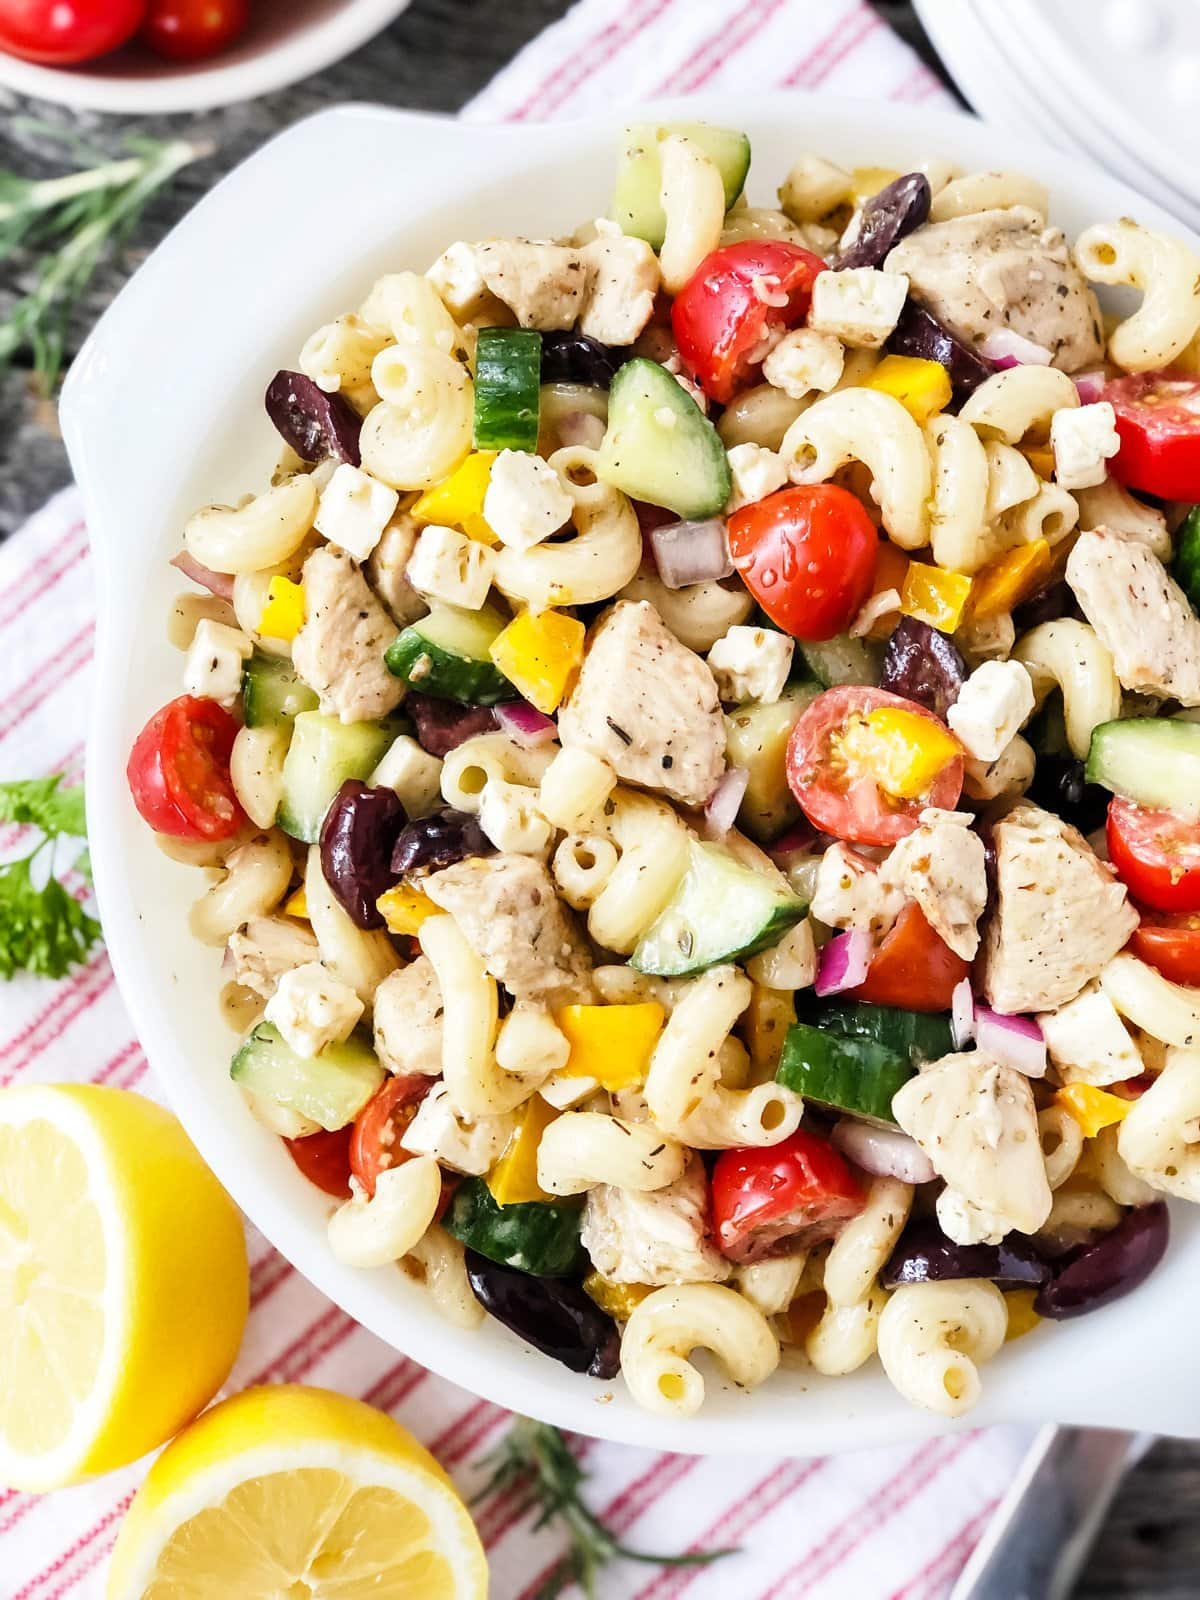 Simple Ways to Stretch Your Meals: Make a pasta salad with leftover pasta and cooked chicken